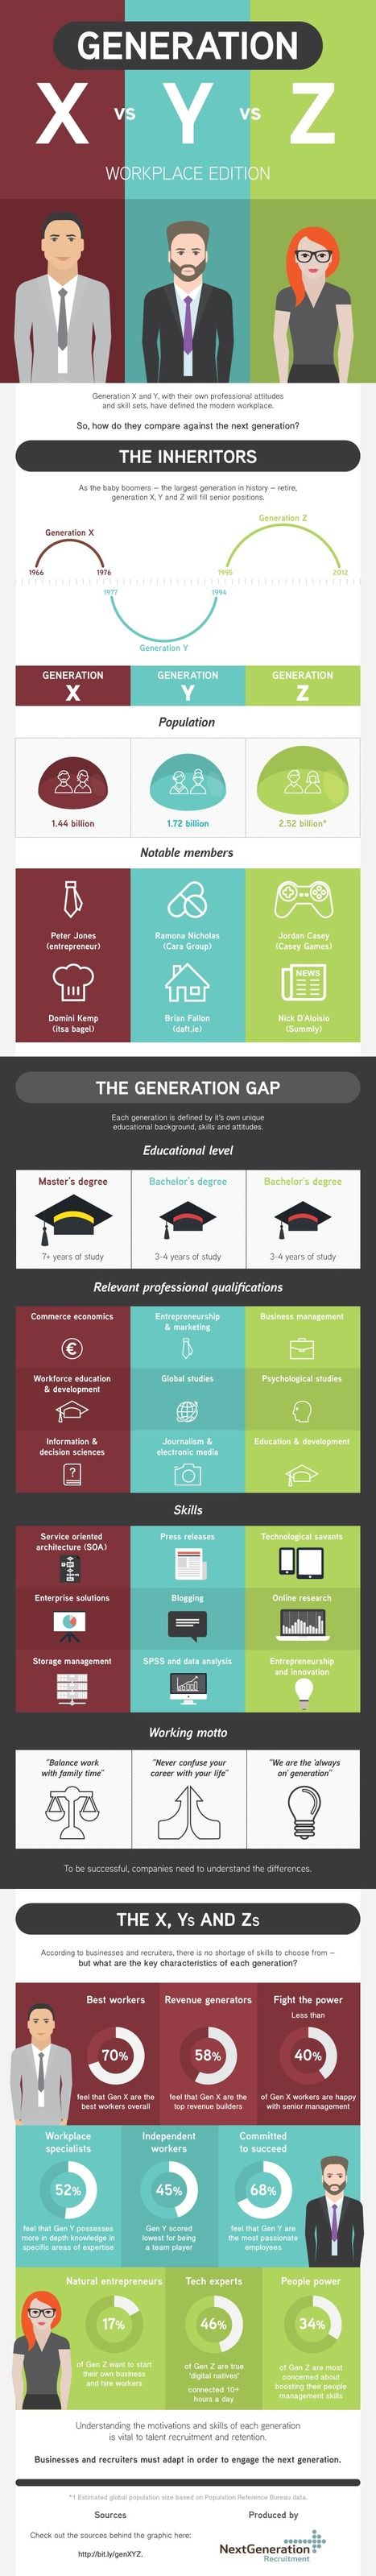 Generation X vs Y vs Z #Workplace  (#Infographic) | Digital Learning, Knowledge and Intelligence | Scoop.it